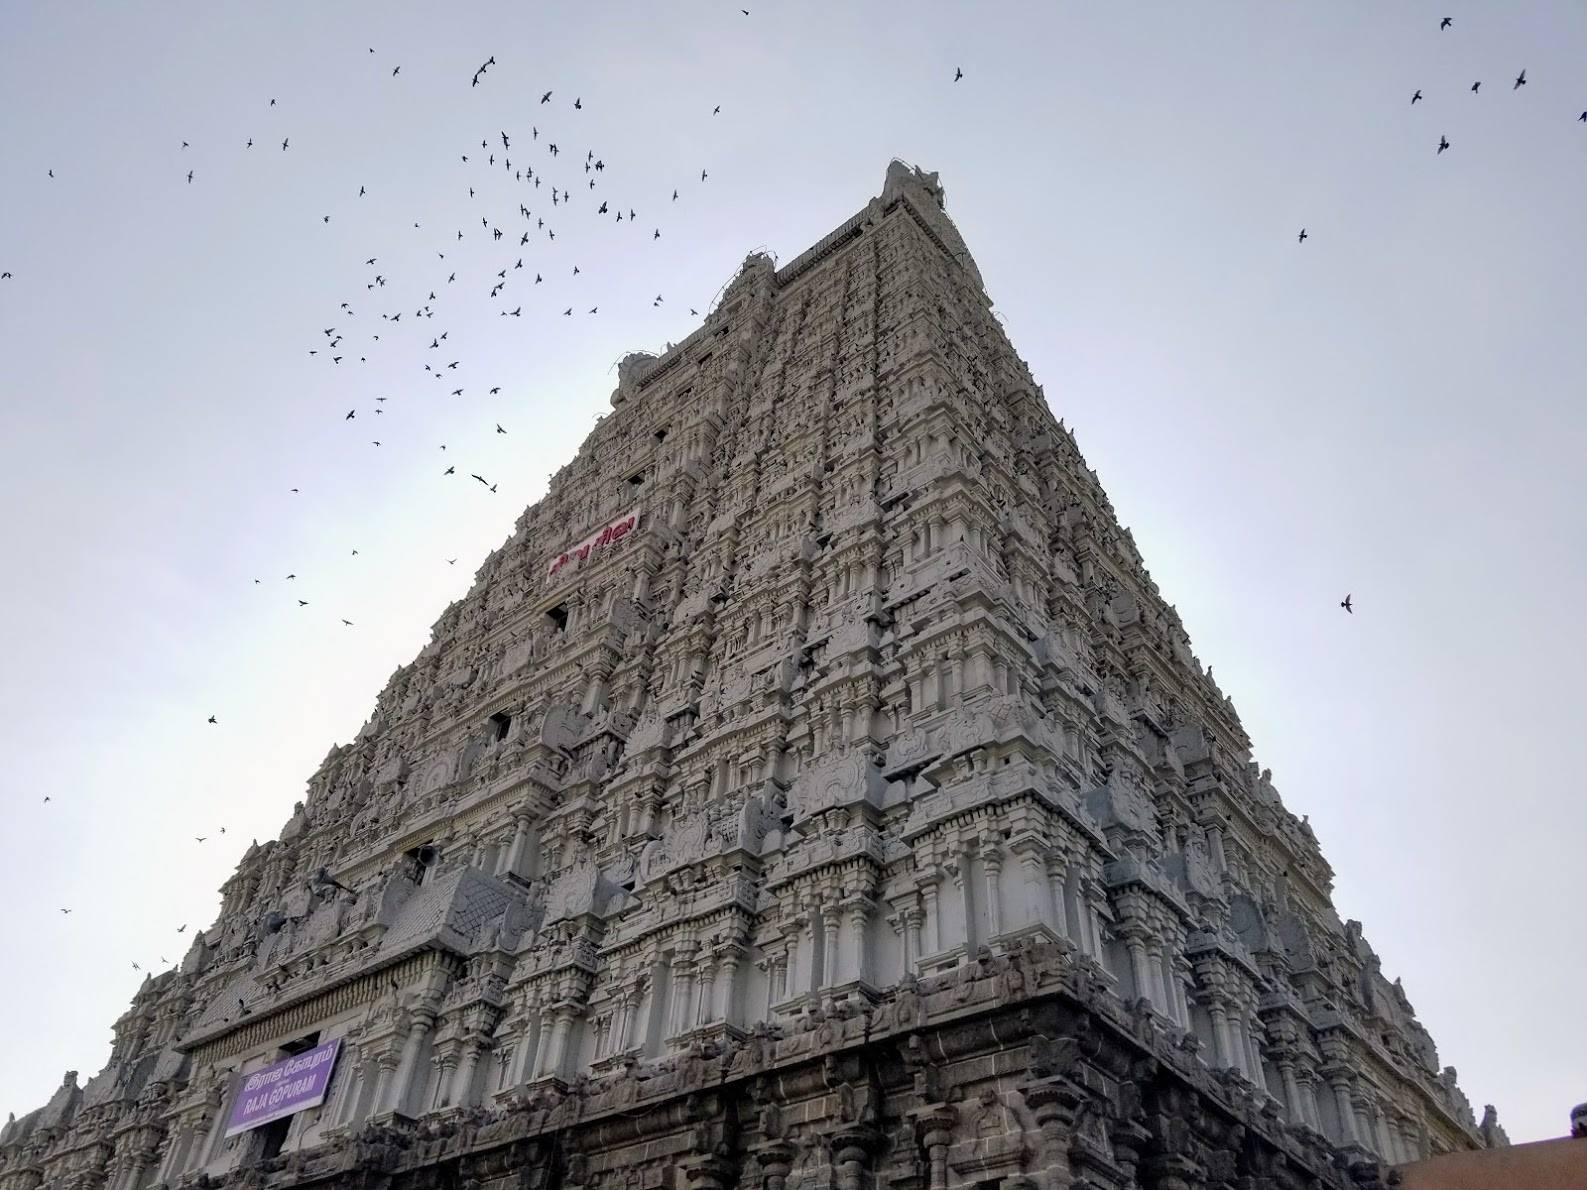 The Annamalaiyar Temple in Tiruvannamalai, nearby where the 3 weeks silence retreat with the enlightened master Madhukar takes place in February/March every year.